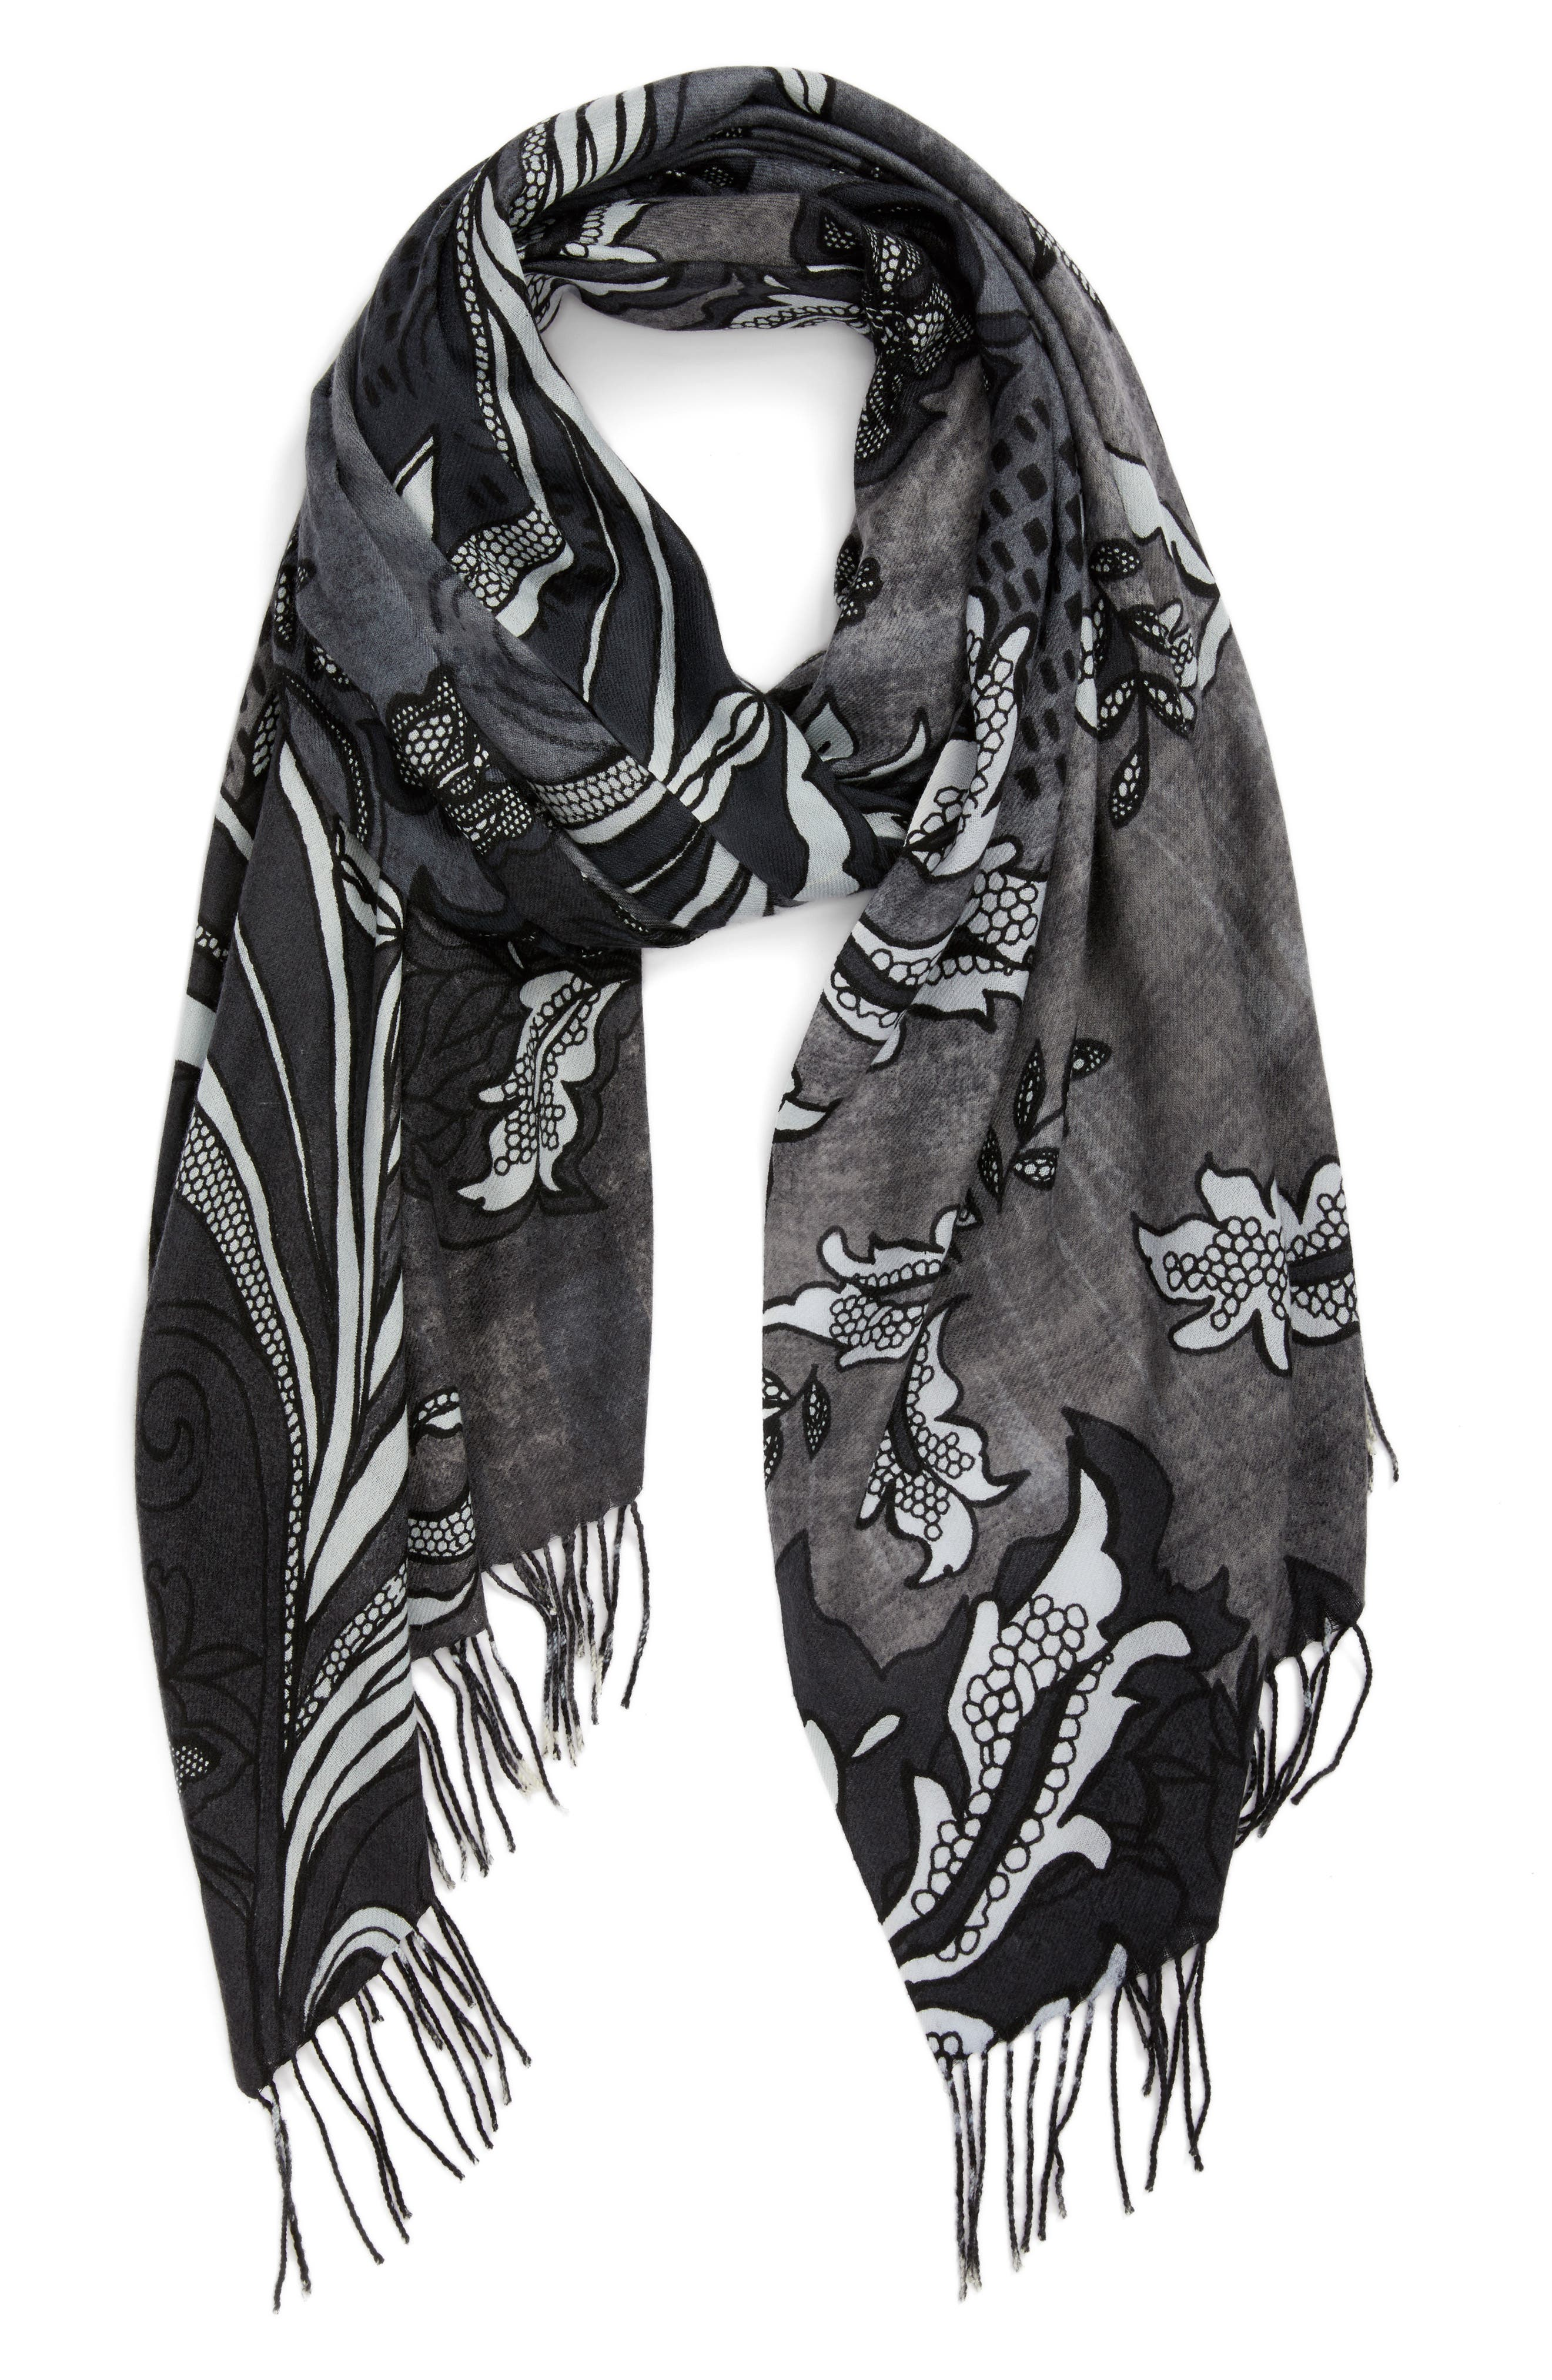 Viennese Floral Tissue Wool & Cashmere Scarf,                             Alternate thumbnail 2, color,                             001